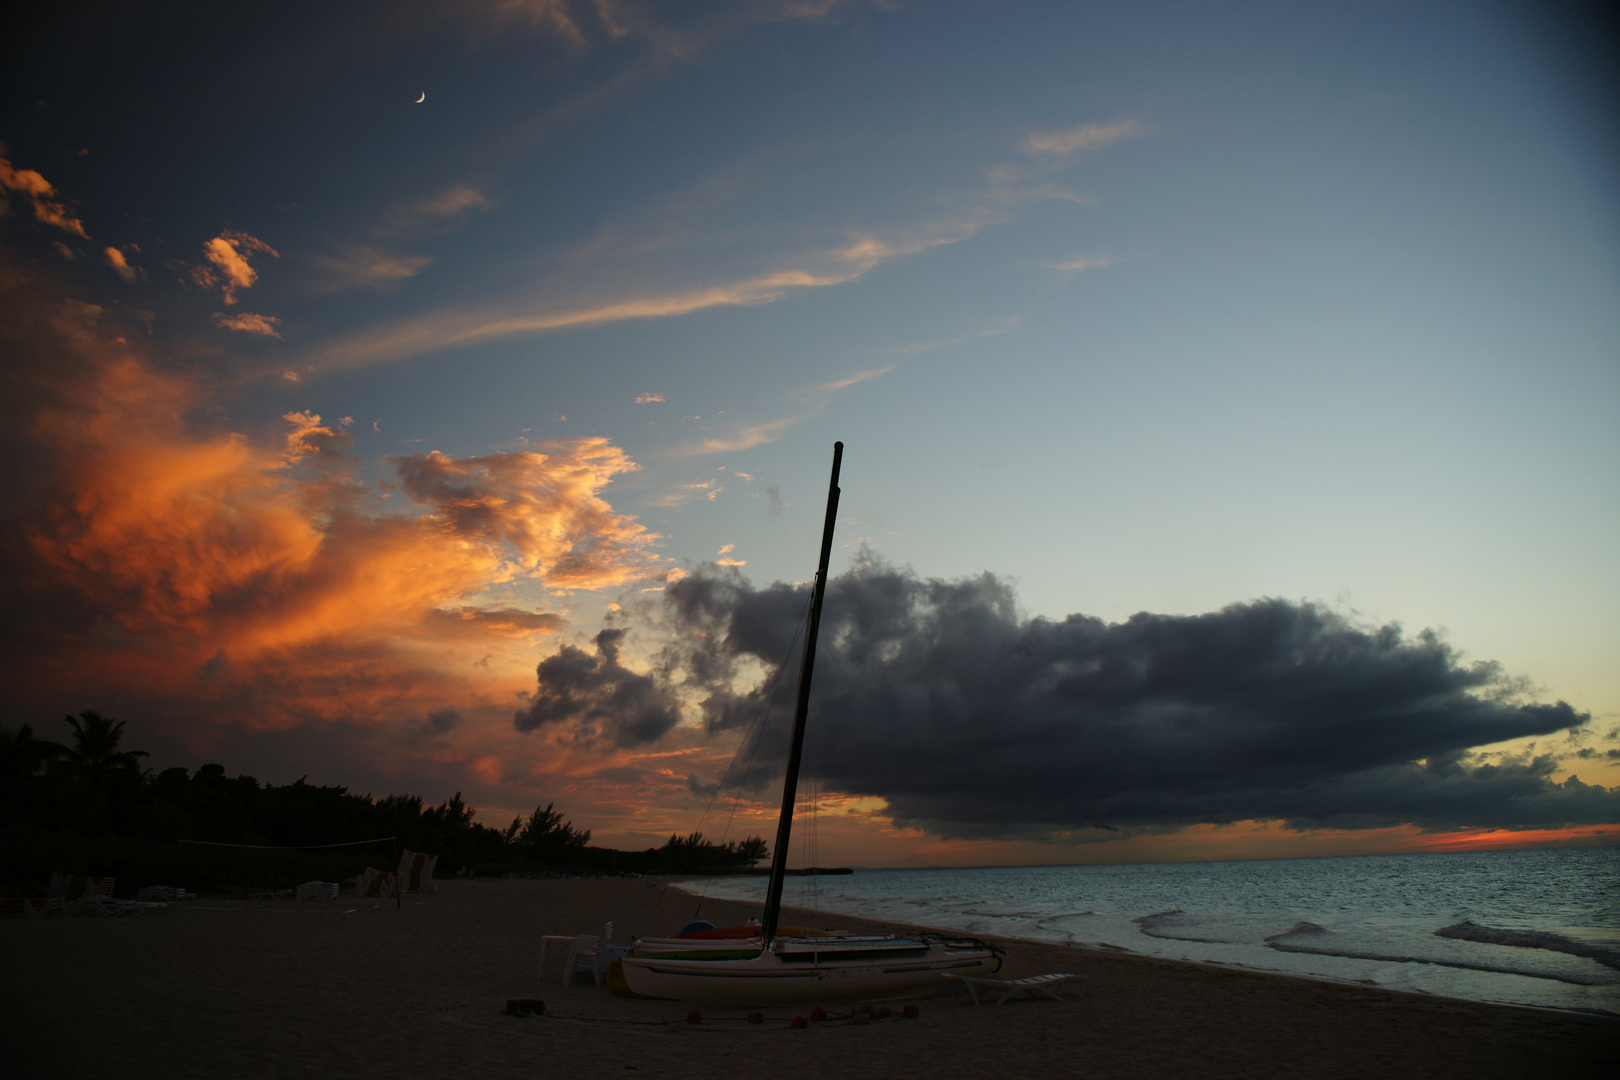 sunset by Varadero